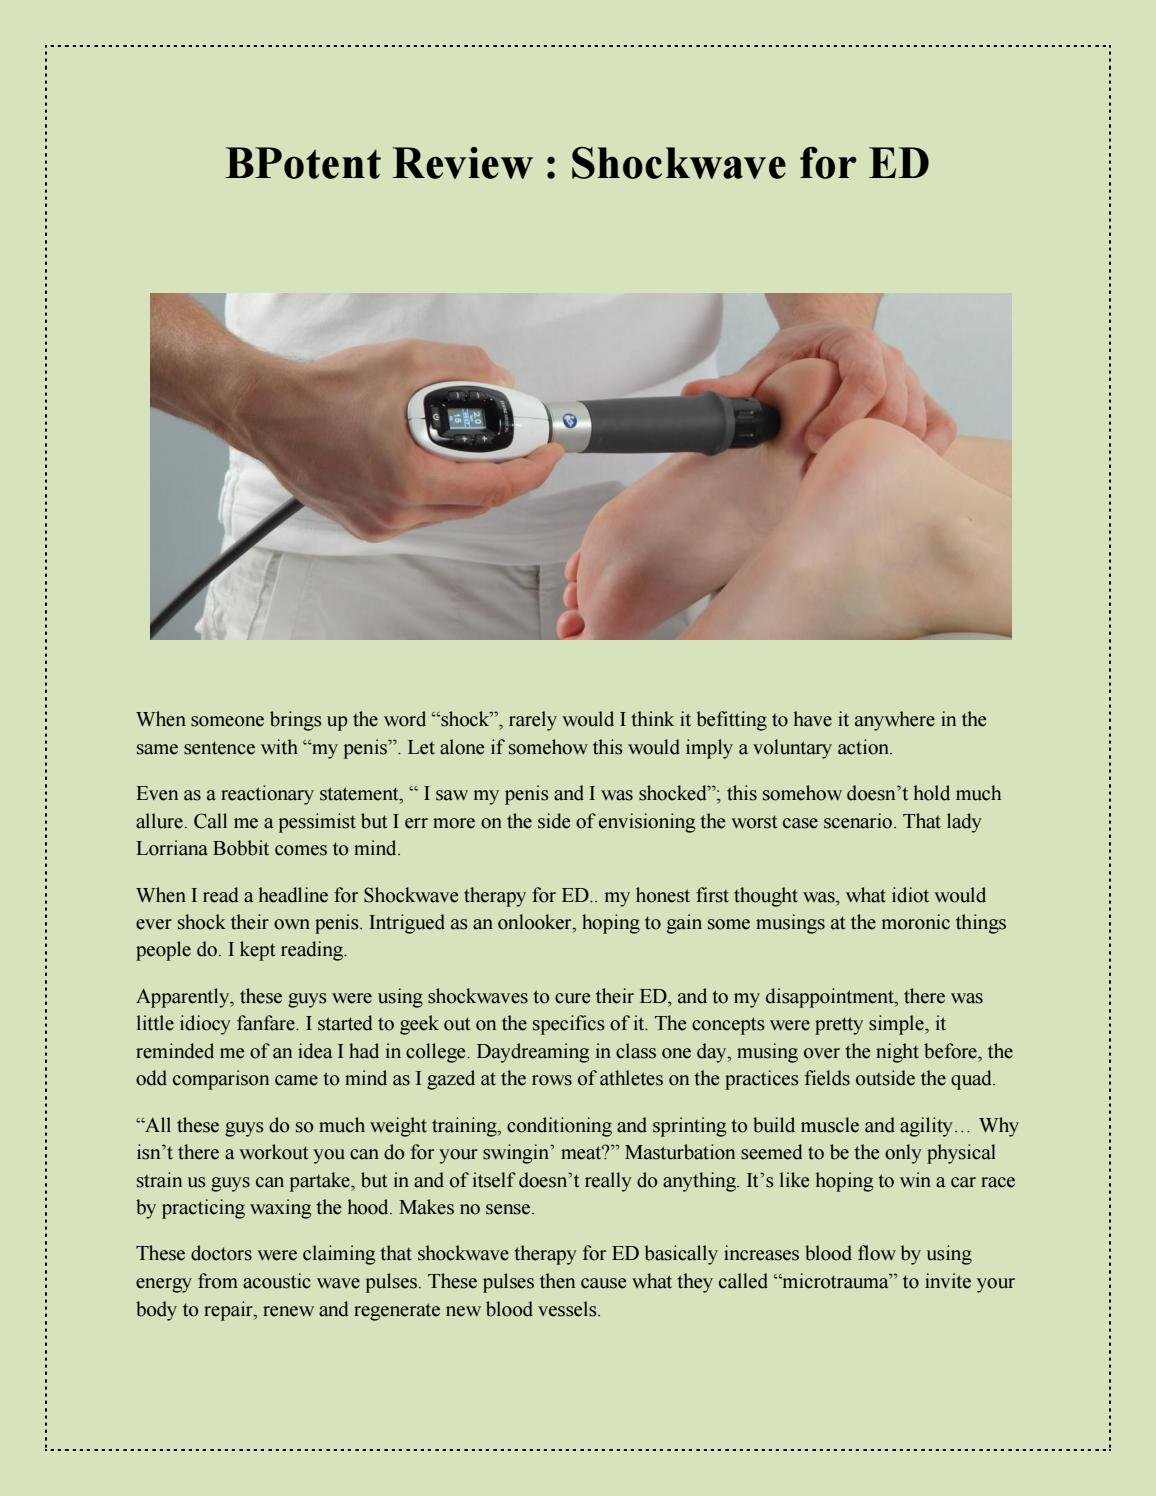 shockwave therapy for ed by Claire Jones - Issuu